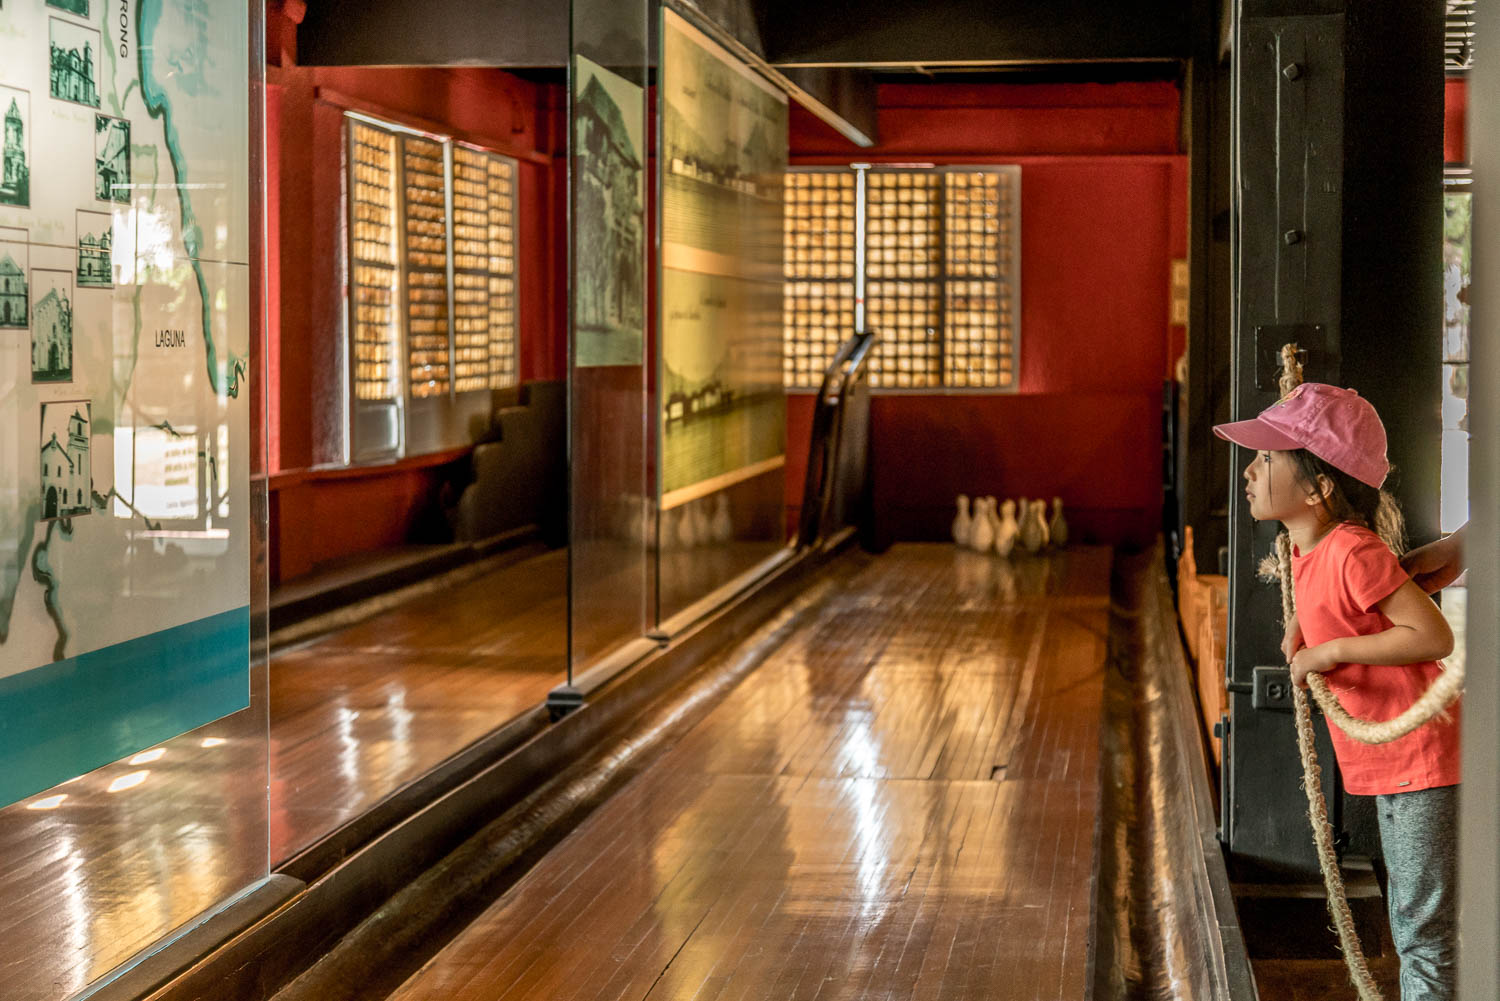 Yep, that's a bowling alley -- proof that Aguinaldo comes from a well-off family.